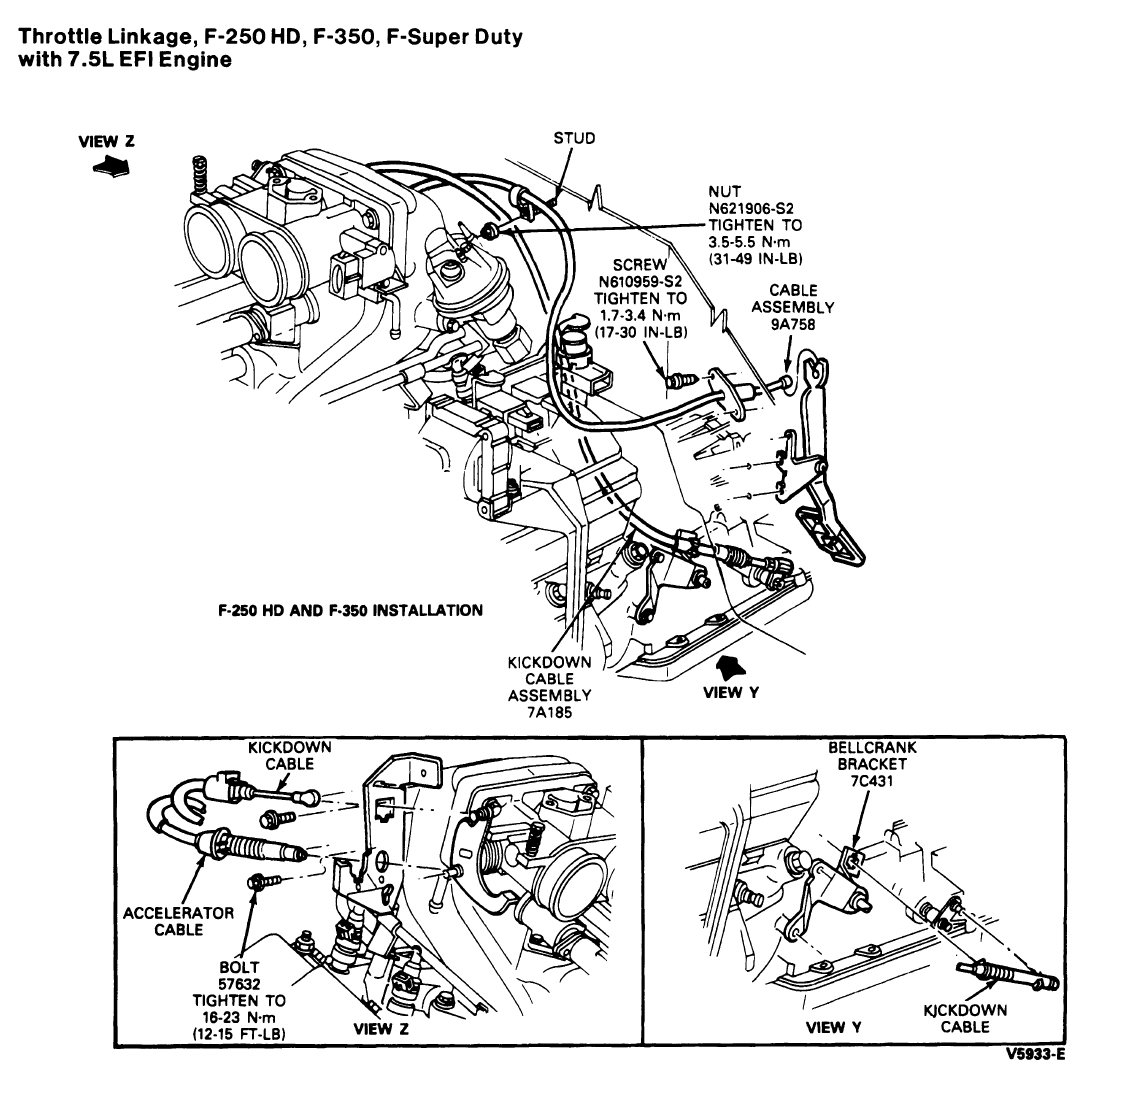 hight resolution of  cable from a c6 transmission the aod and other trans are different i include a diagram from the ford service manual showing the linkage for the 7 5